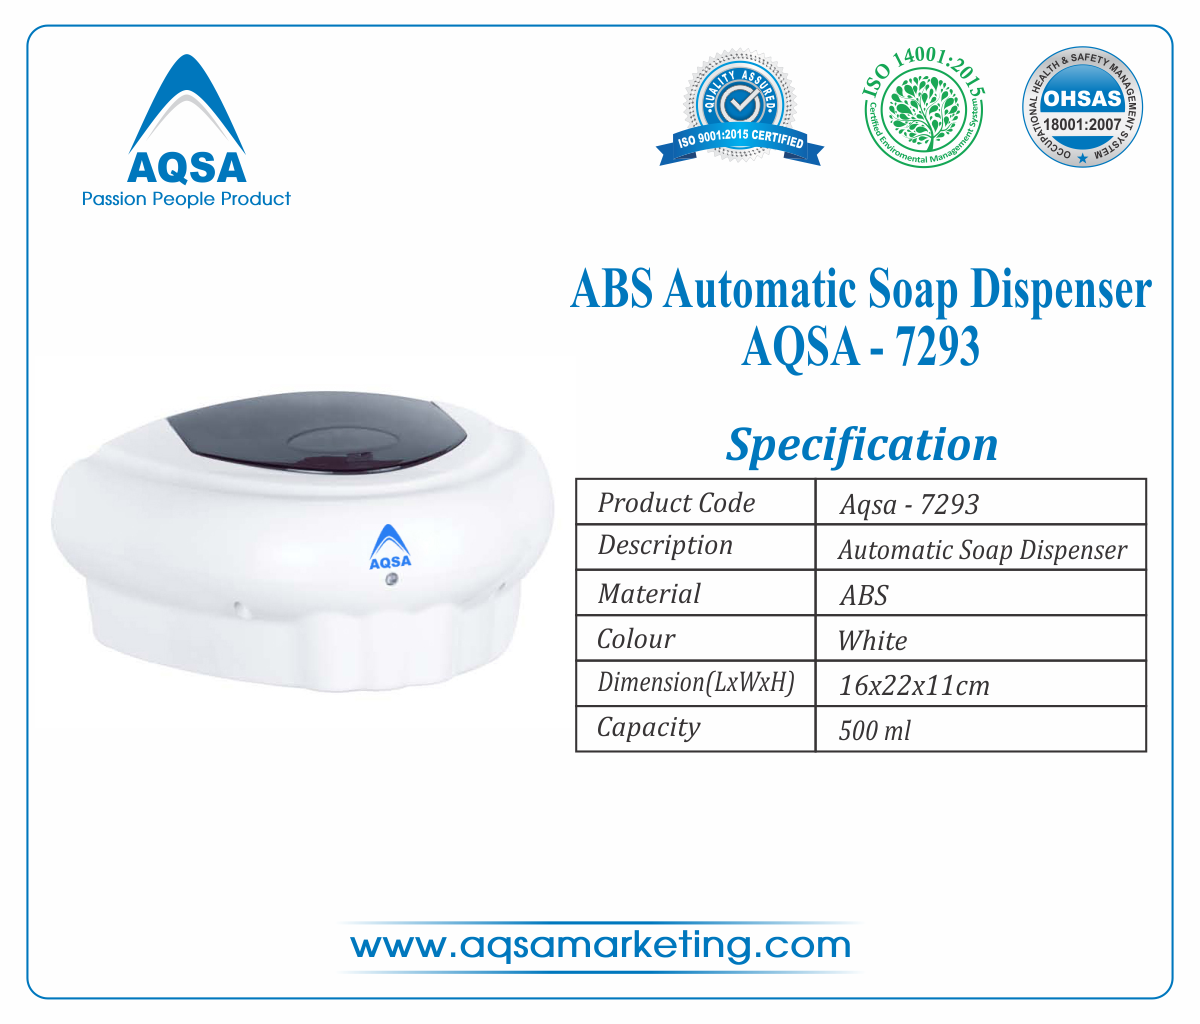 ABS Automatic Soap Dispenser 500ml AQSA-7293 image